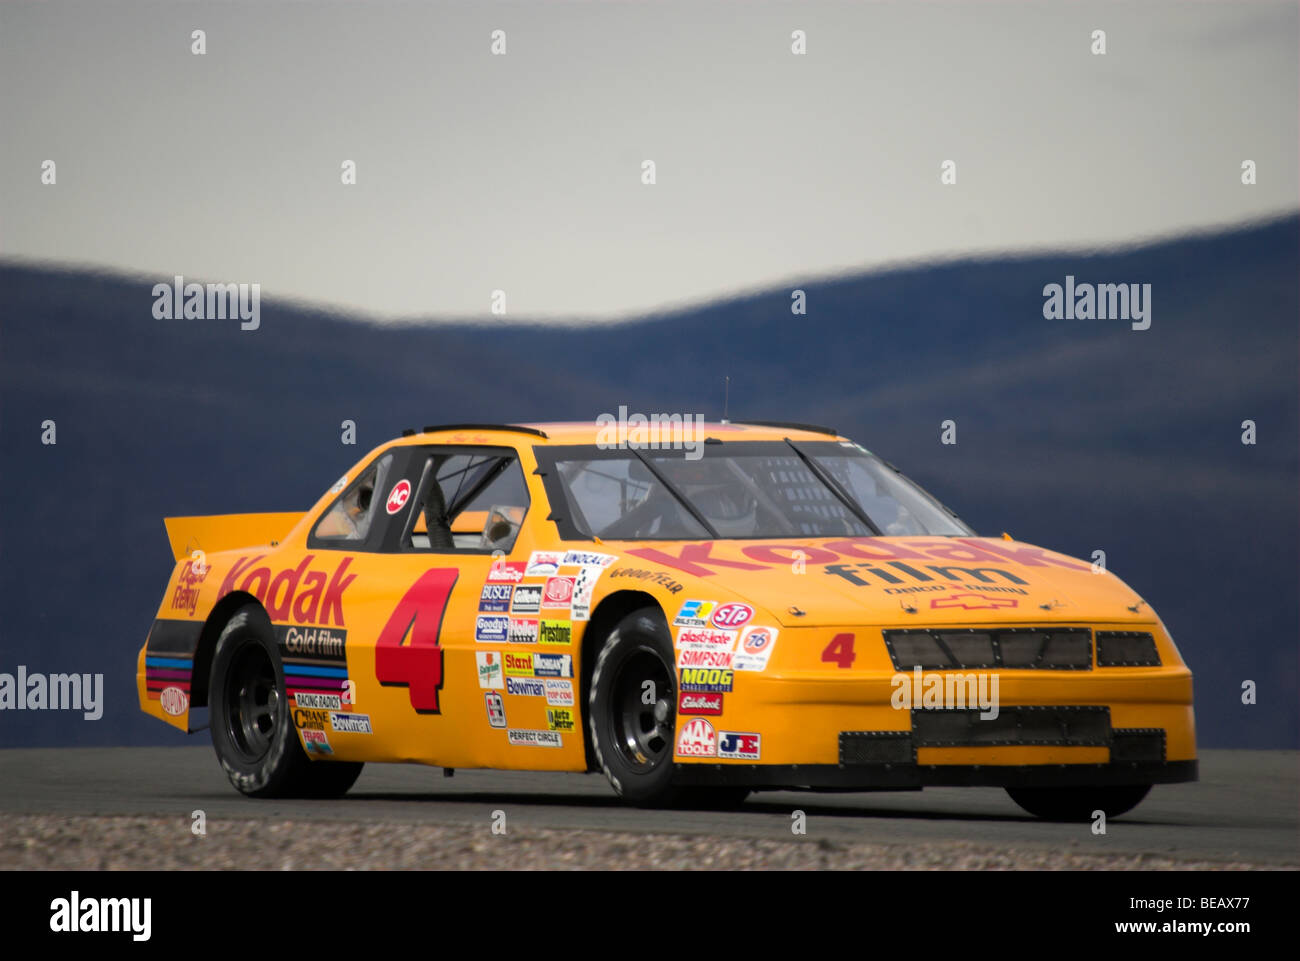 a 1992 chevy lumina historic nascar at a vintage racing event stock photo 26055659 alamy. Black Bedroom Furniture Sets. Home Design Ideas